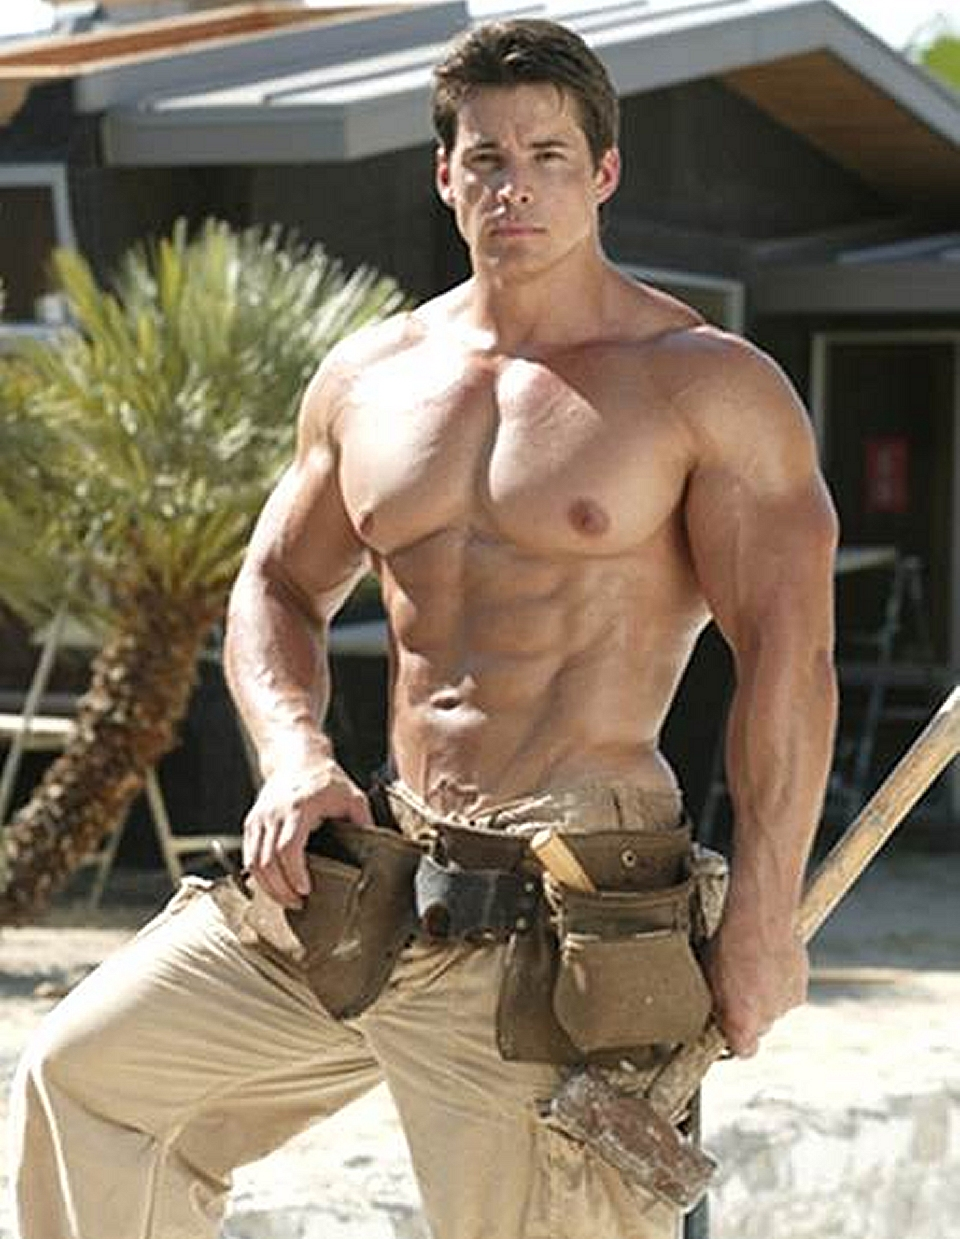 you are not your job david m masters you are not your job there is more to life someone call a handyman